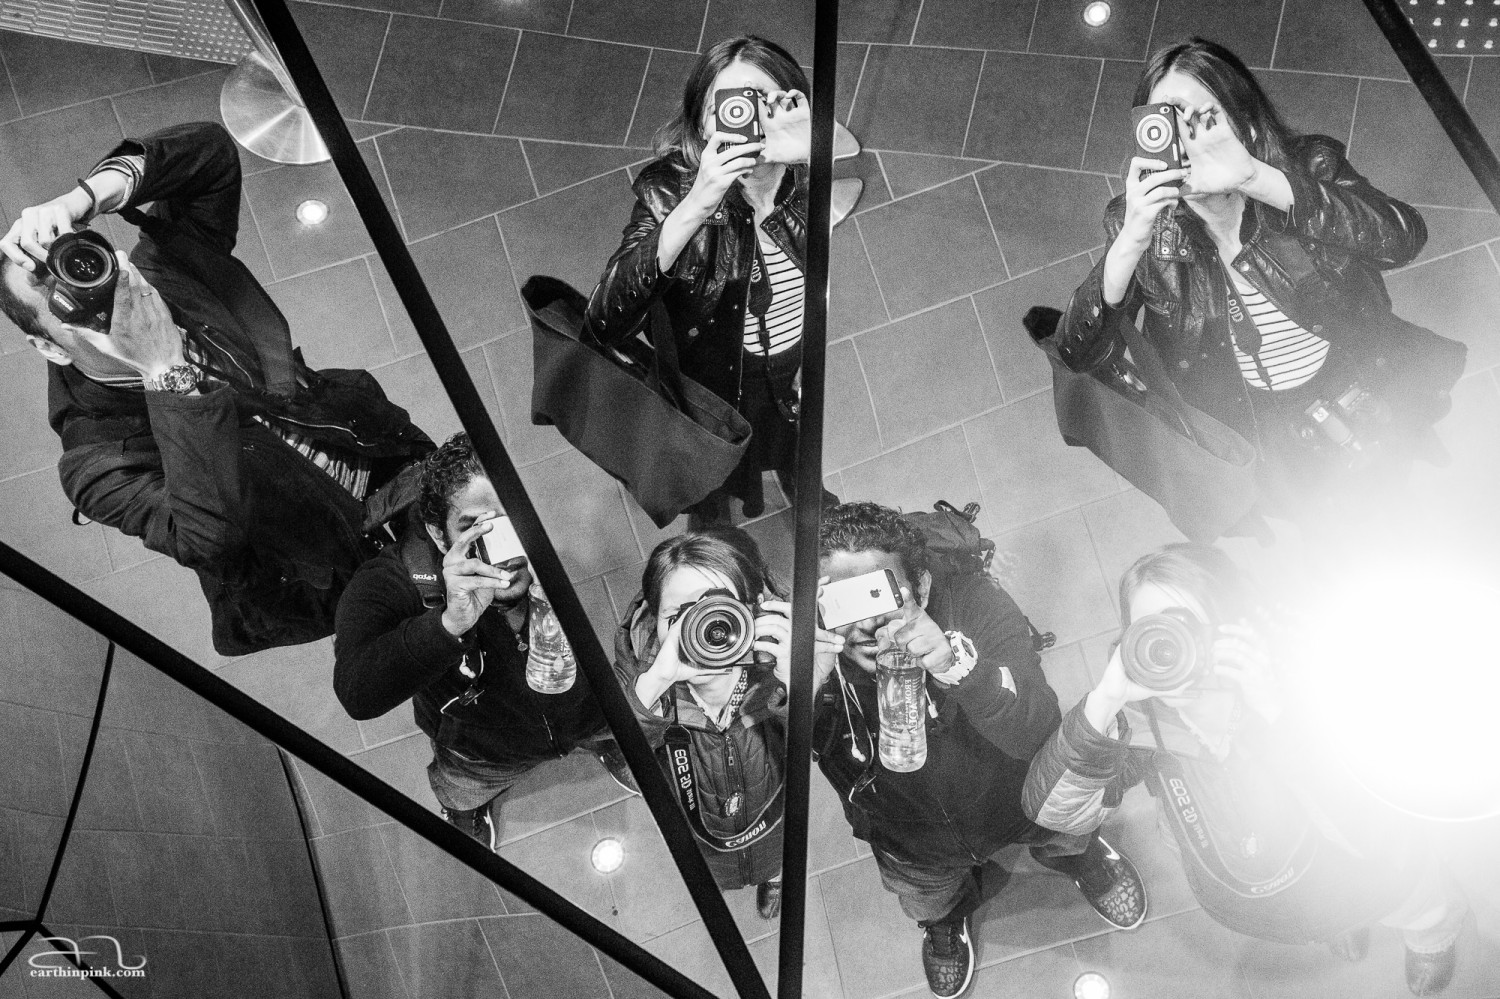 During a night photography meet-up in Harajuku, our assignment was to take portraits of strangers - but when we reached this mall entrance covered with mirrors, we couldn't help but pause for a group selfie.